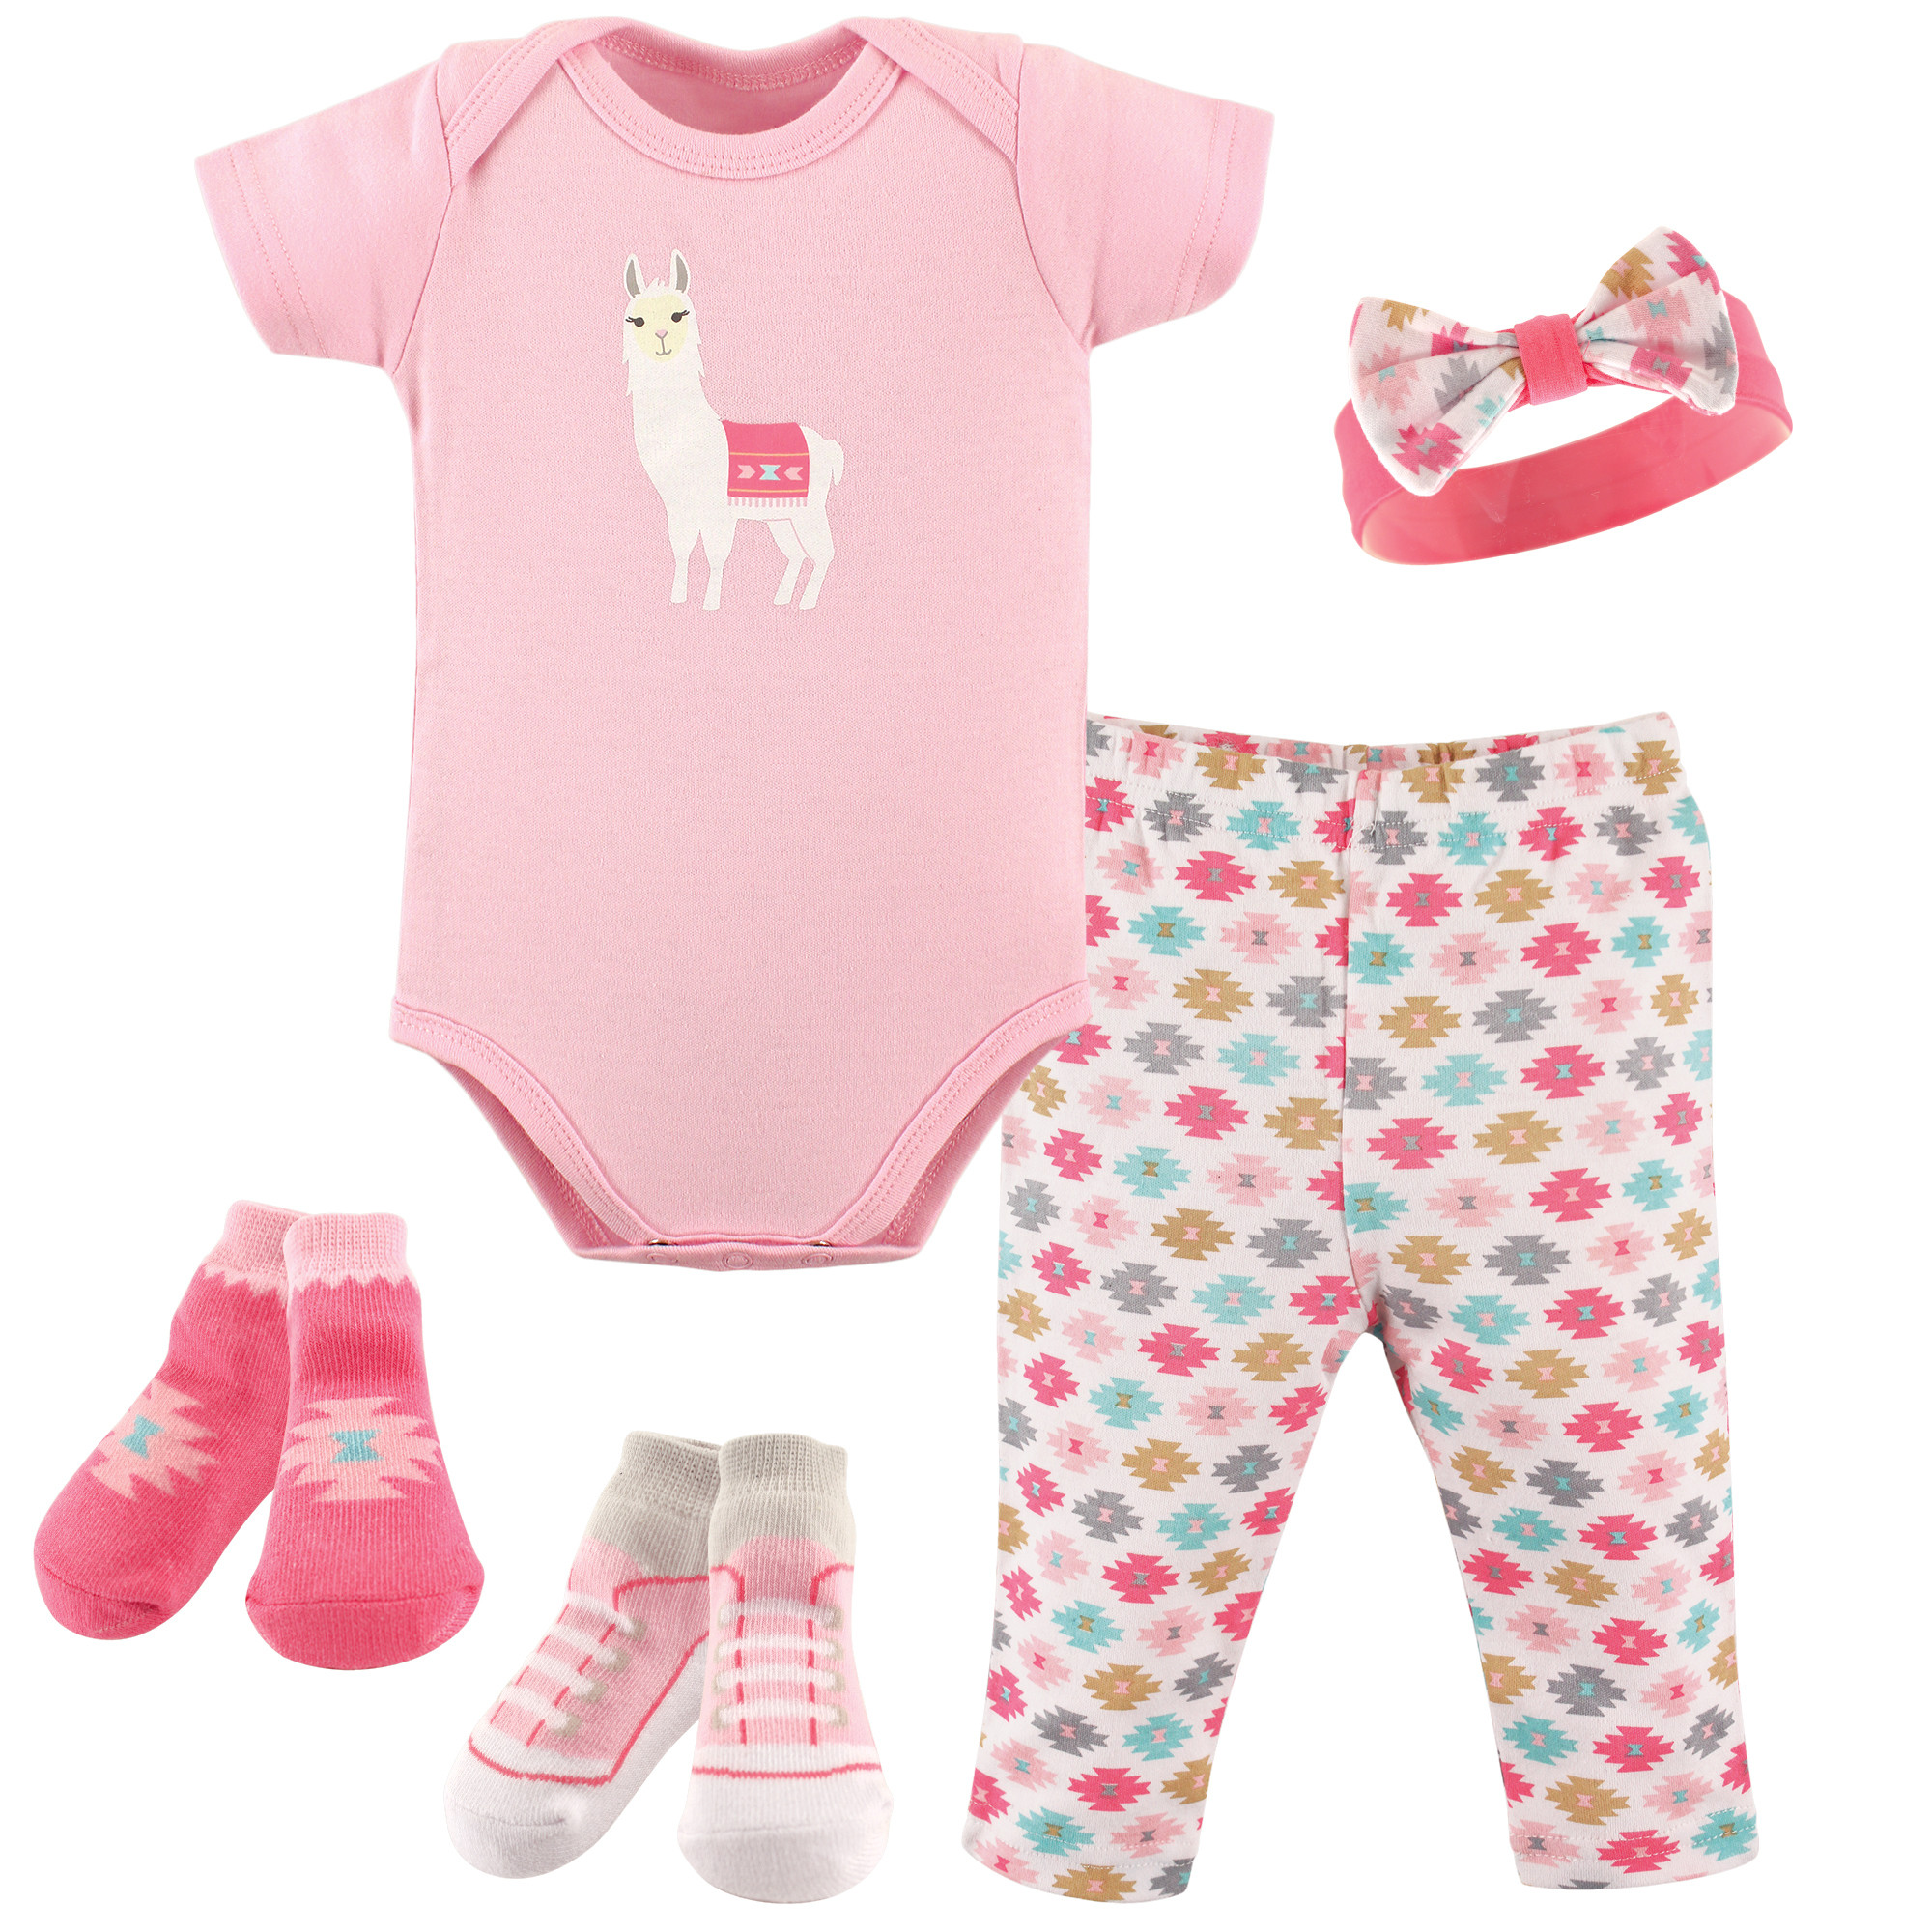 Hudson baby Gift sets Clothing t sets